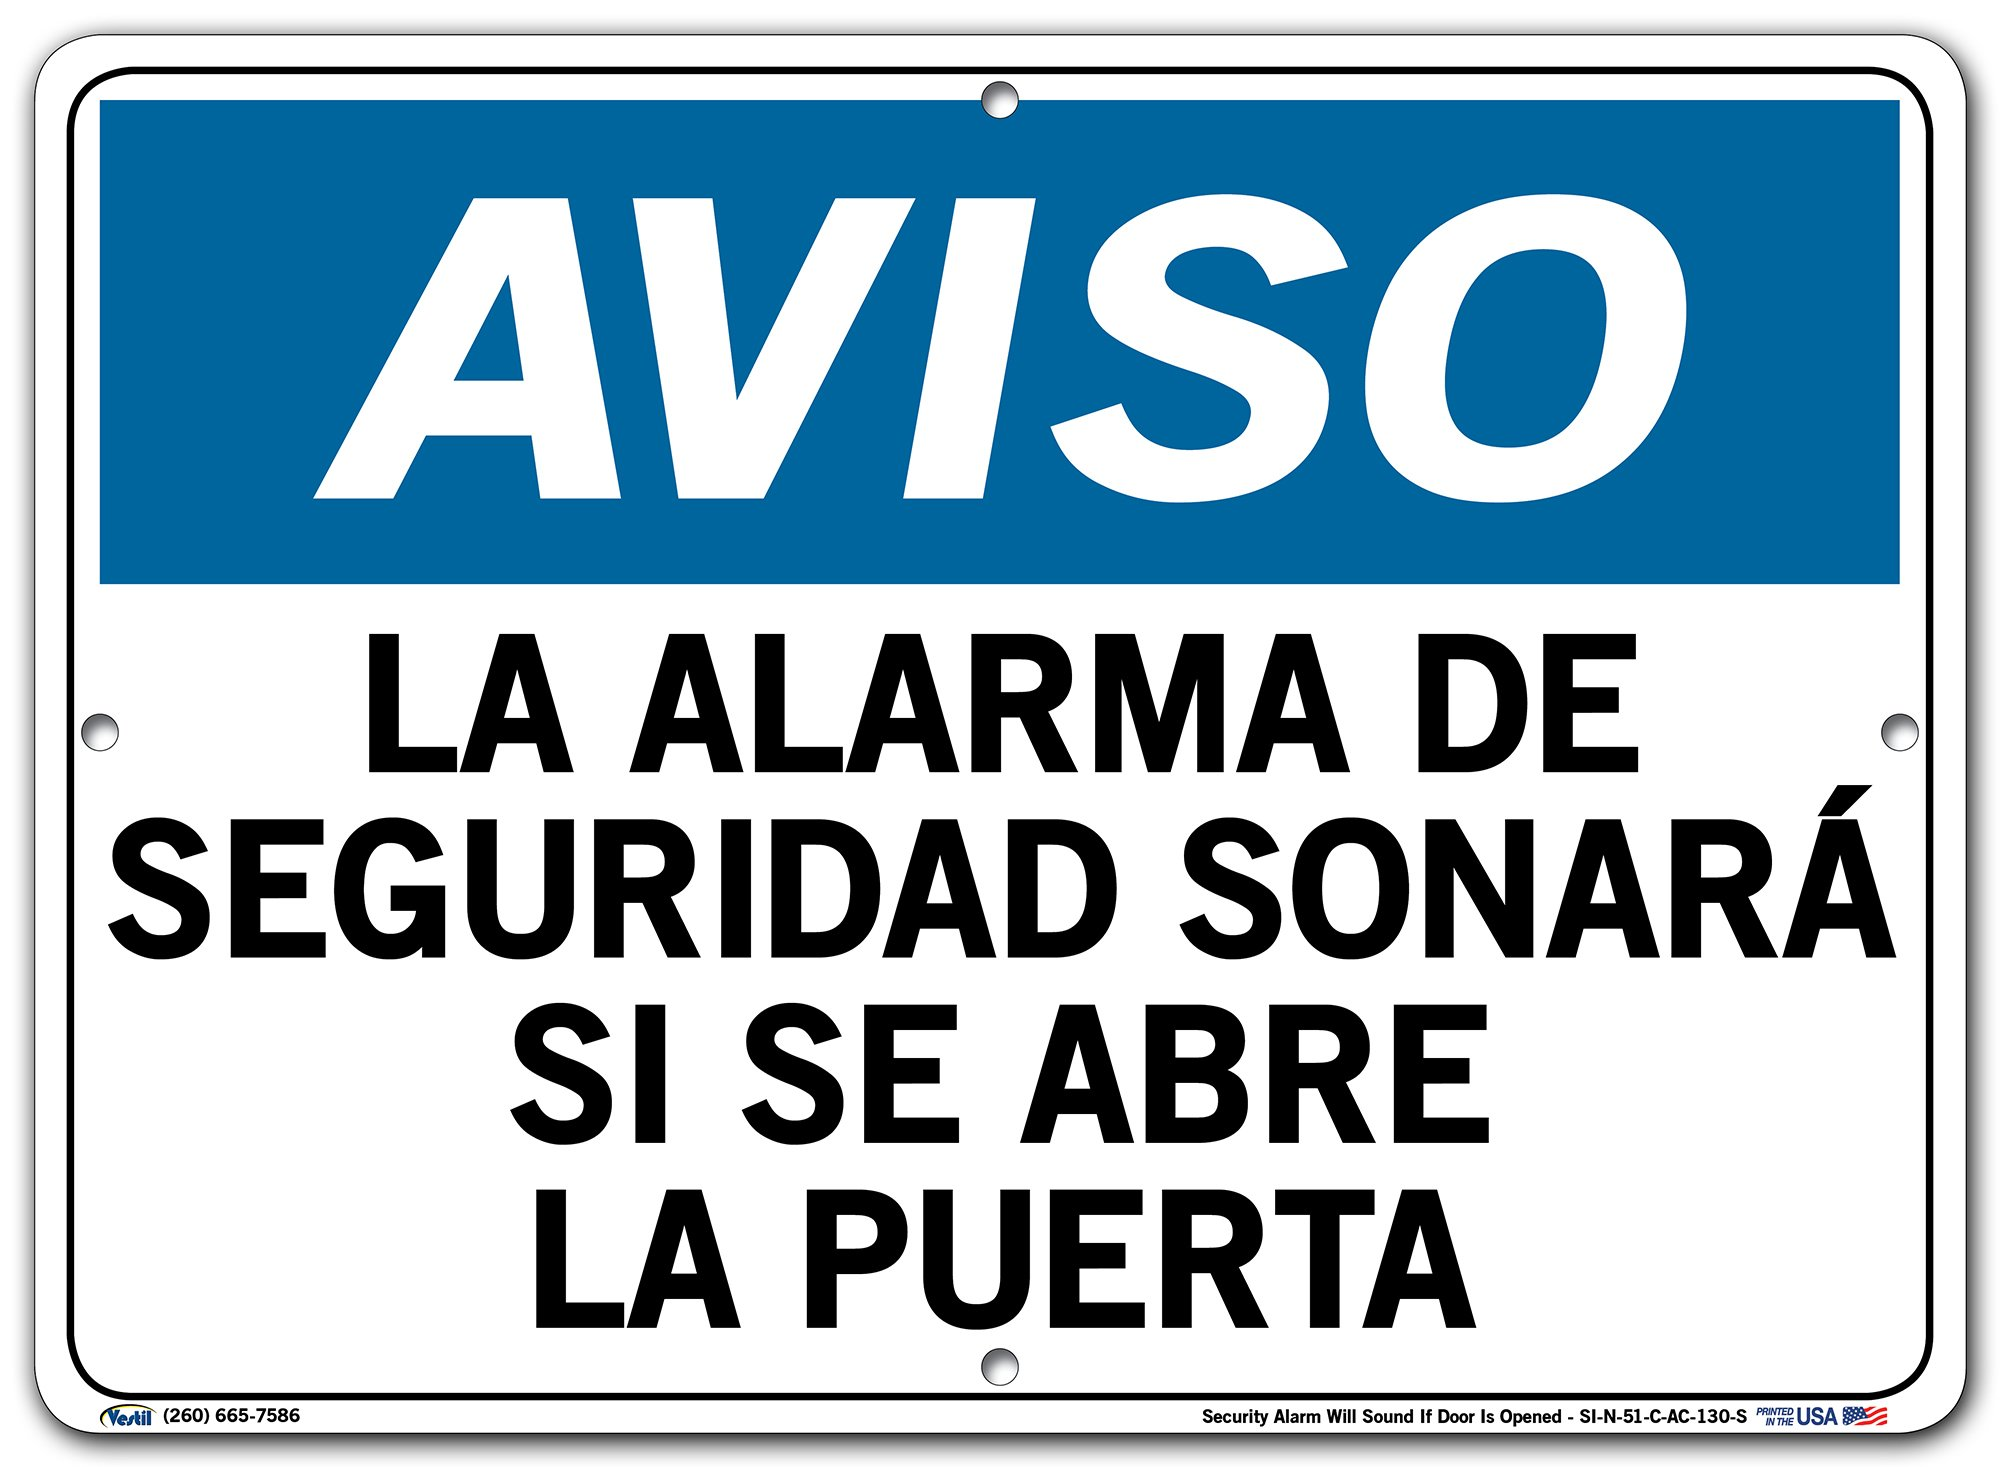 Vestil Spanish Notice Sign SI-N-51, Security Alarm Will Sound If Door is Opened, LA ALARMA DE SEGURIDAD SONARÁ SI SE ABRE LA PUERTA